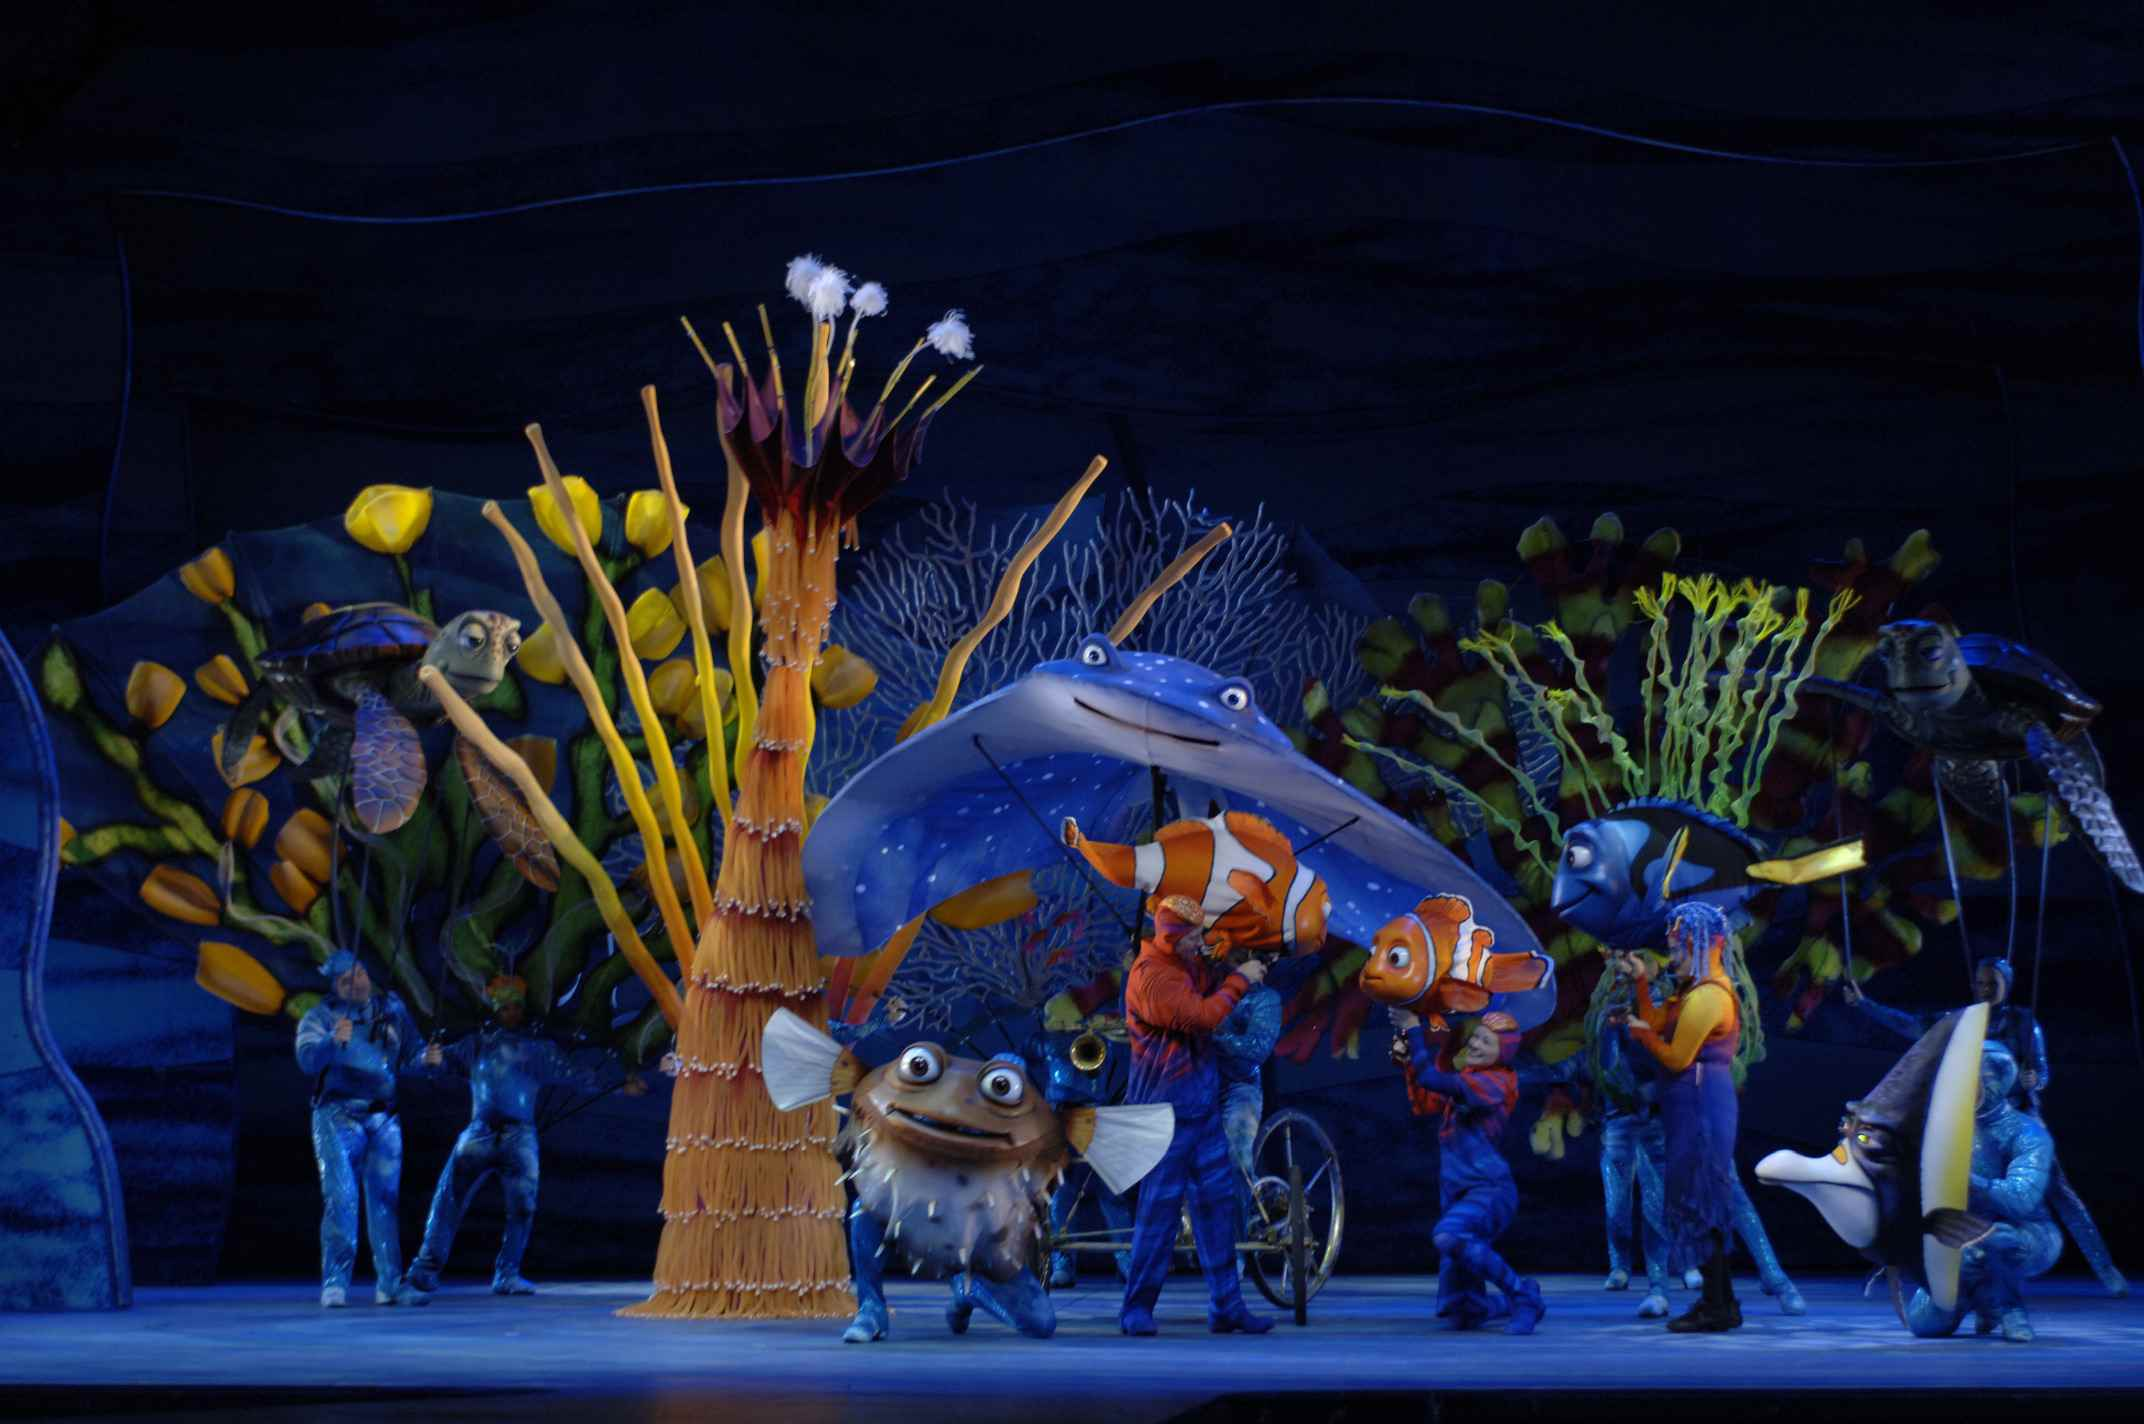 performers in Finding Nemo the Musical at Disney's Animal Kingdom